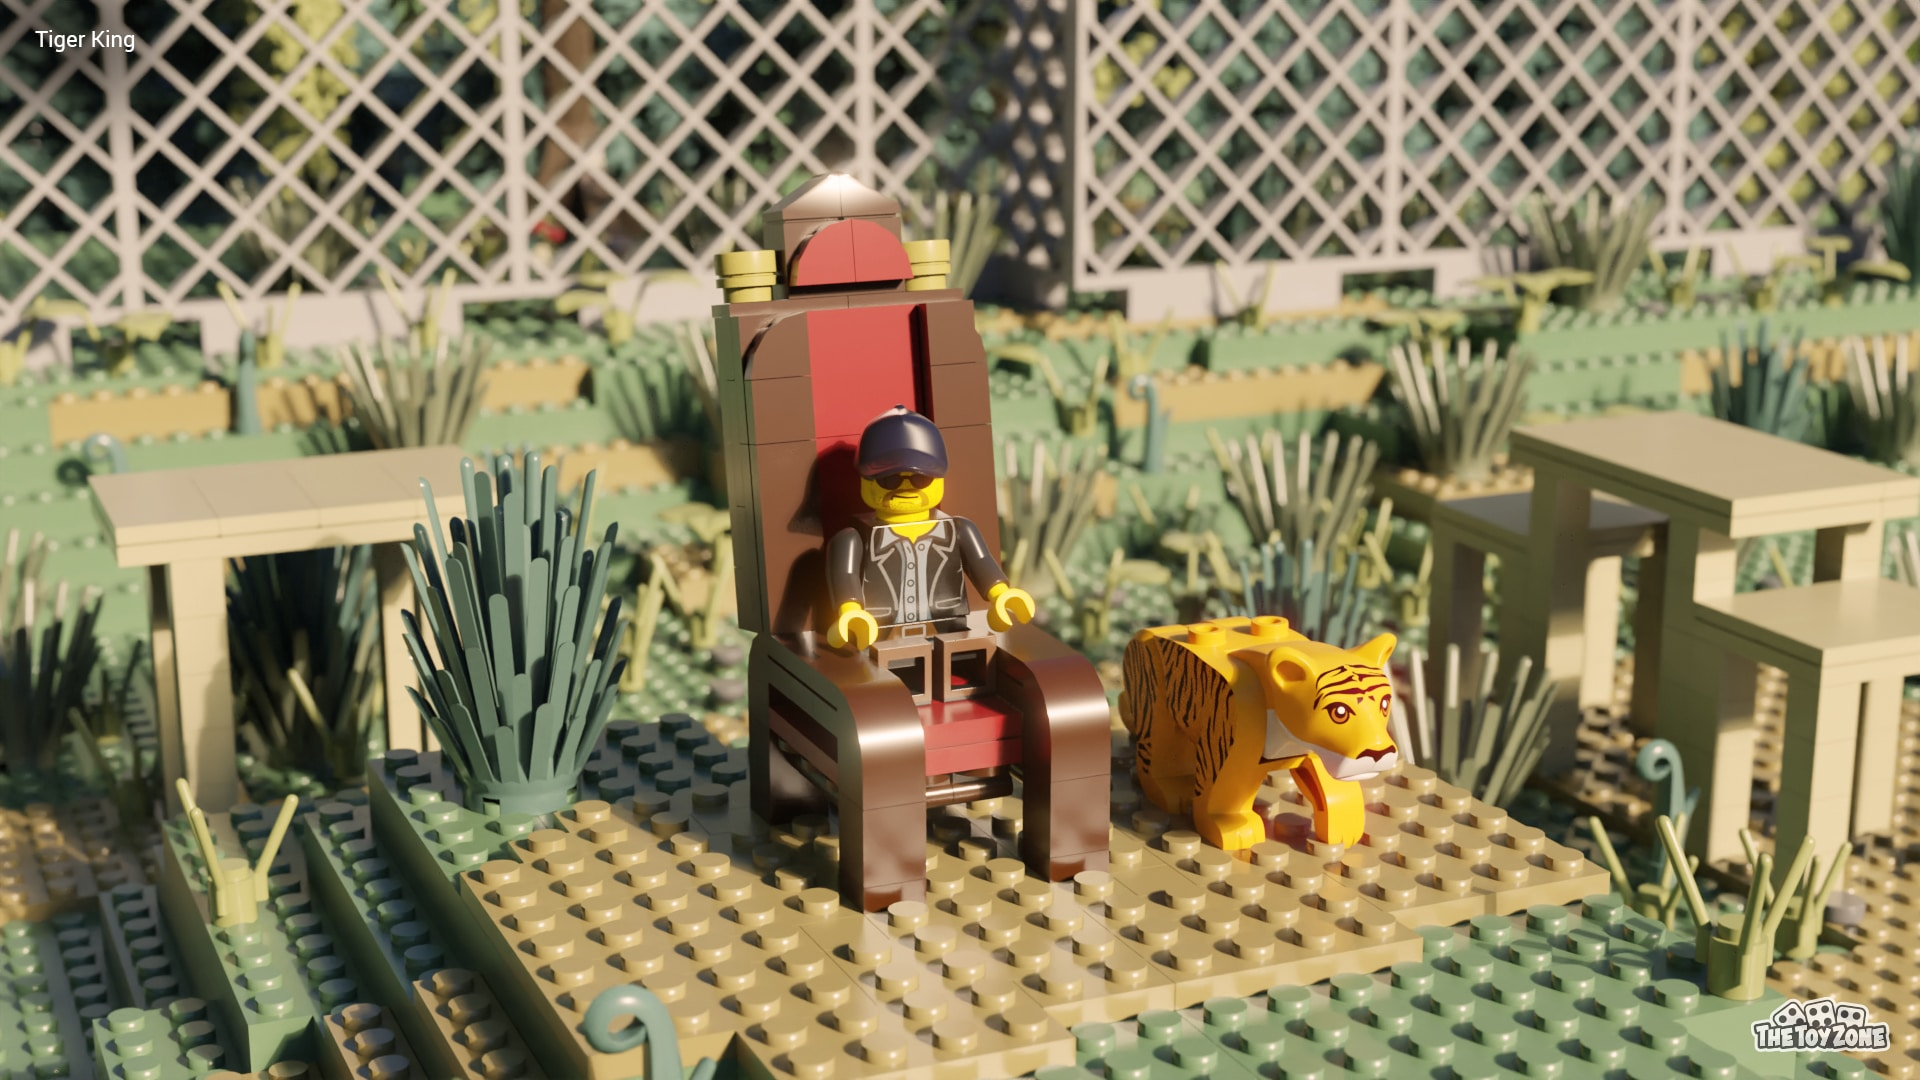 The Crown, Bridgerton, and other Netflix series get recreated in LEGO 26